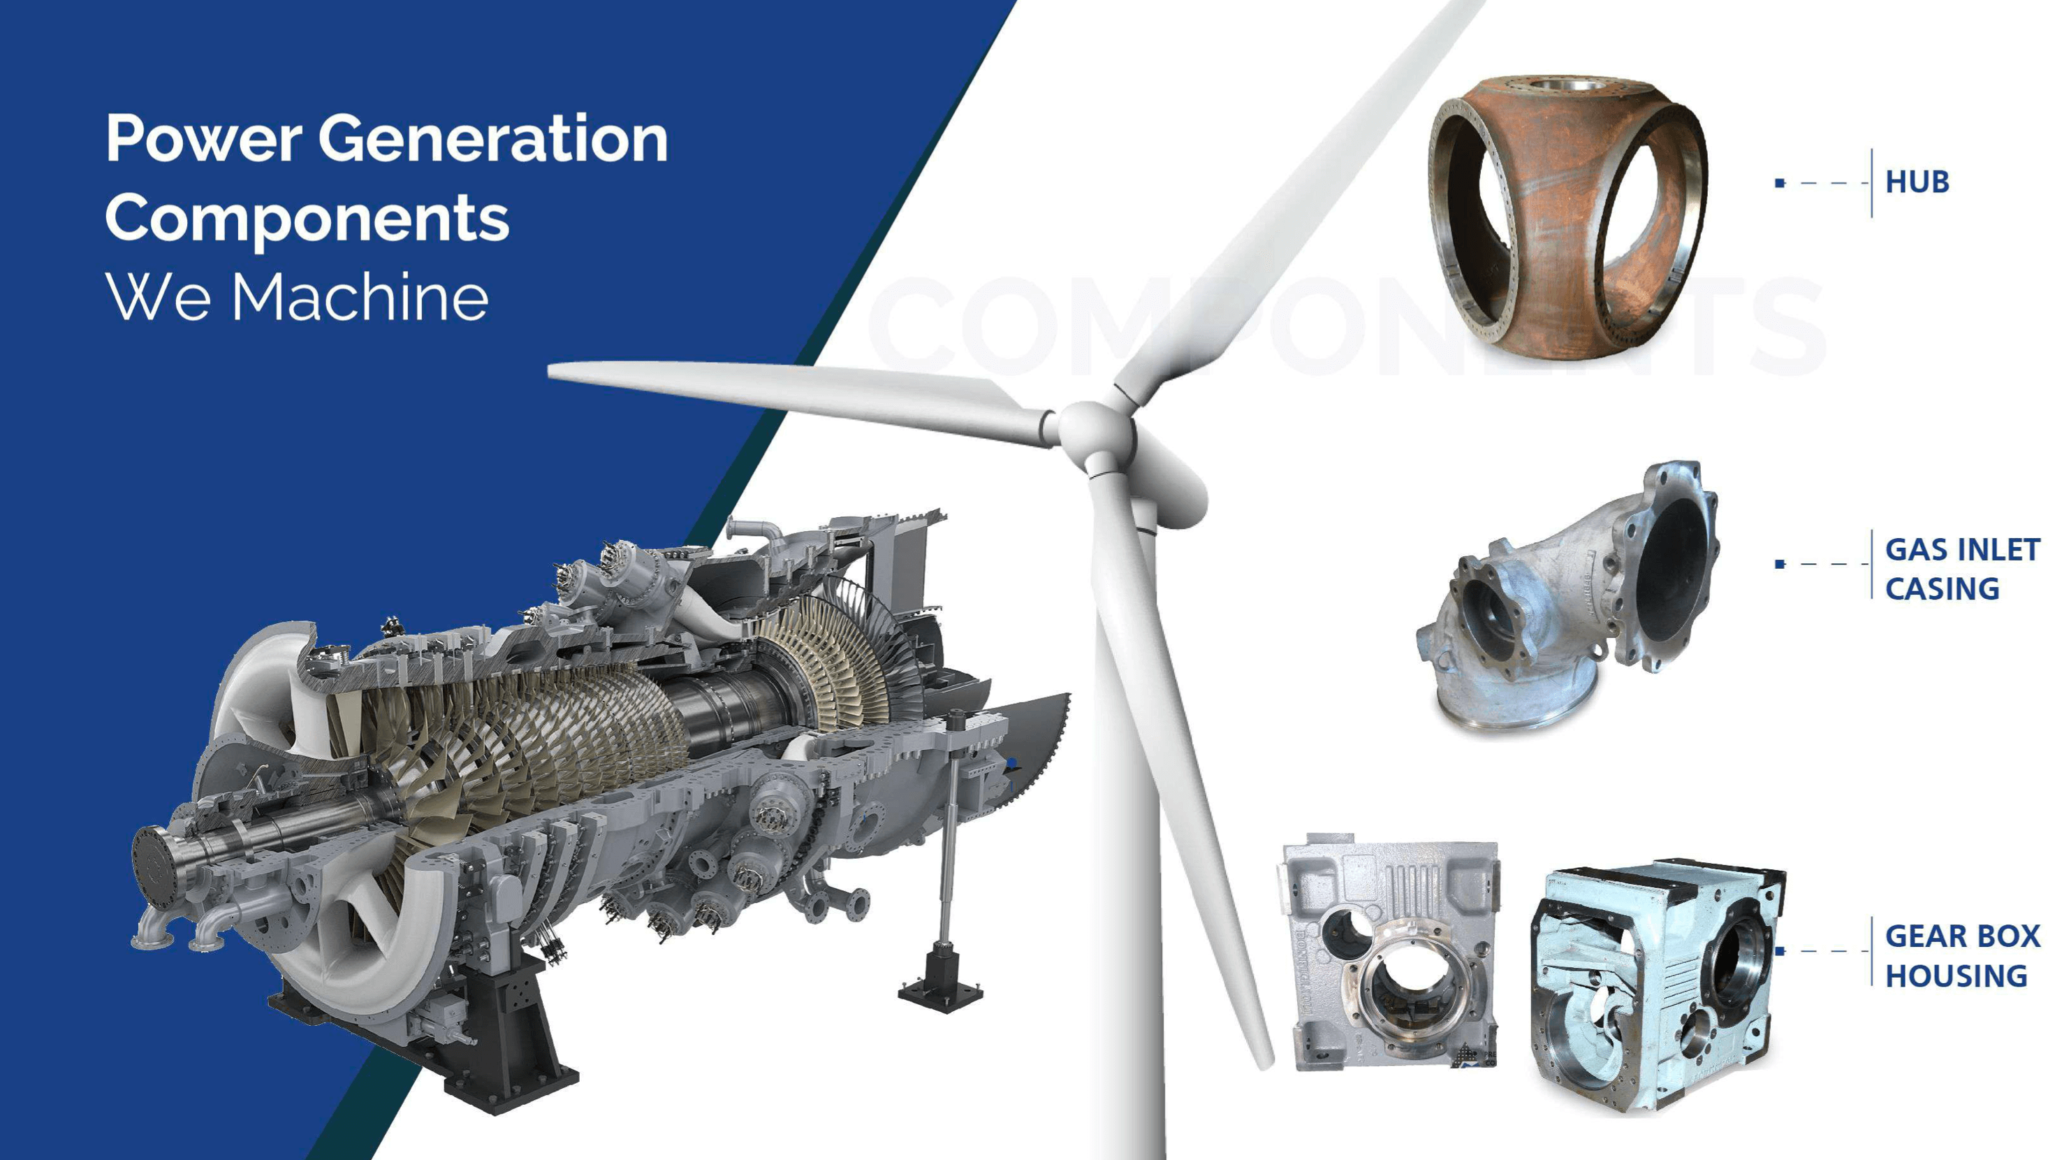 Power generation components